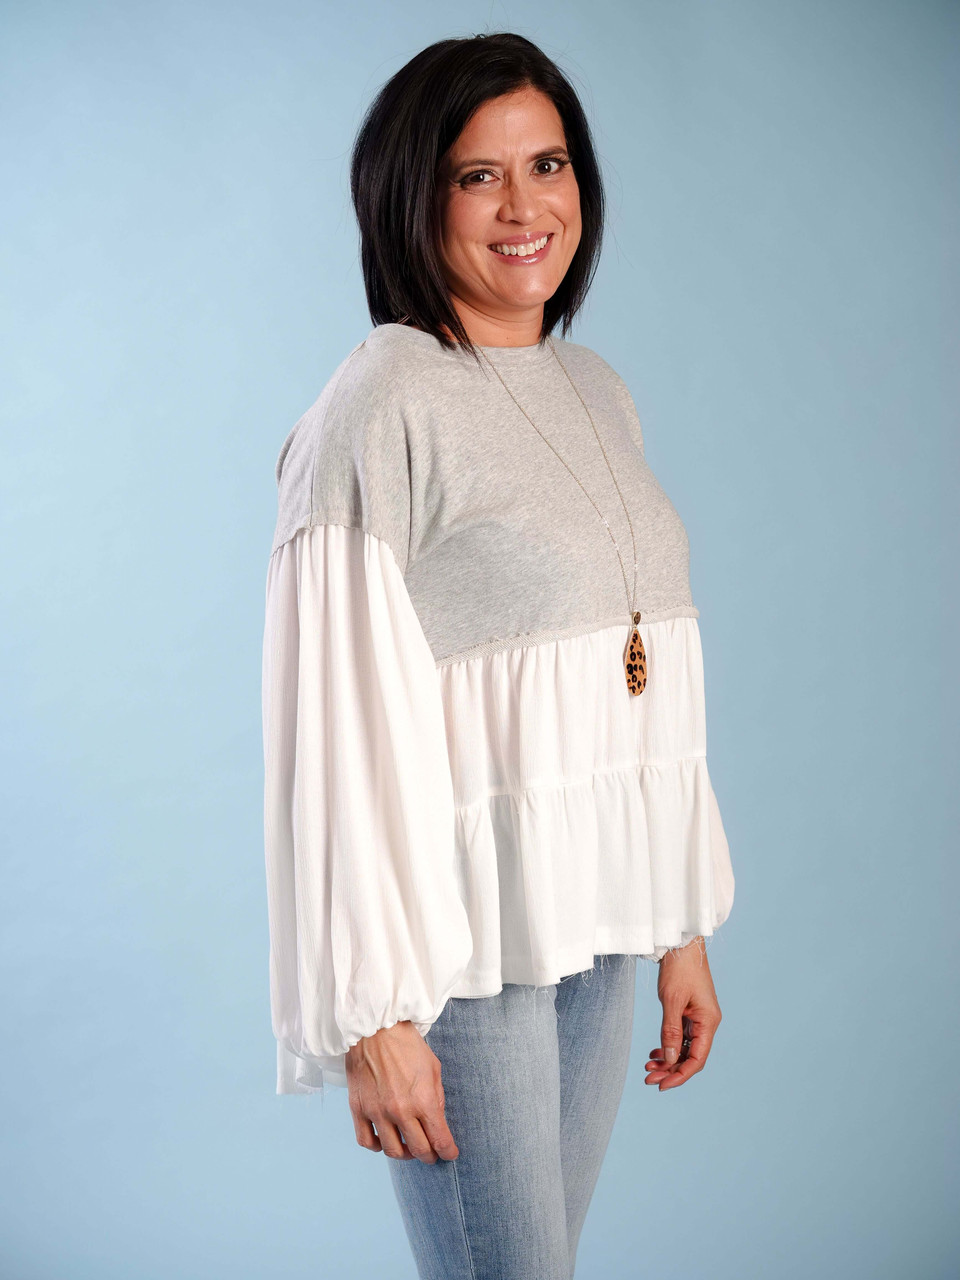 prarie style oversized gray and white top